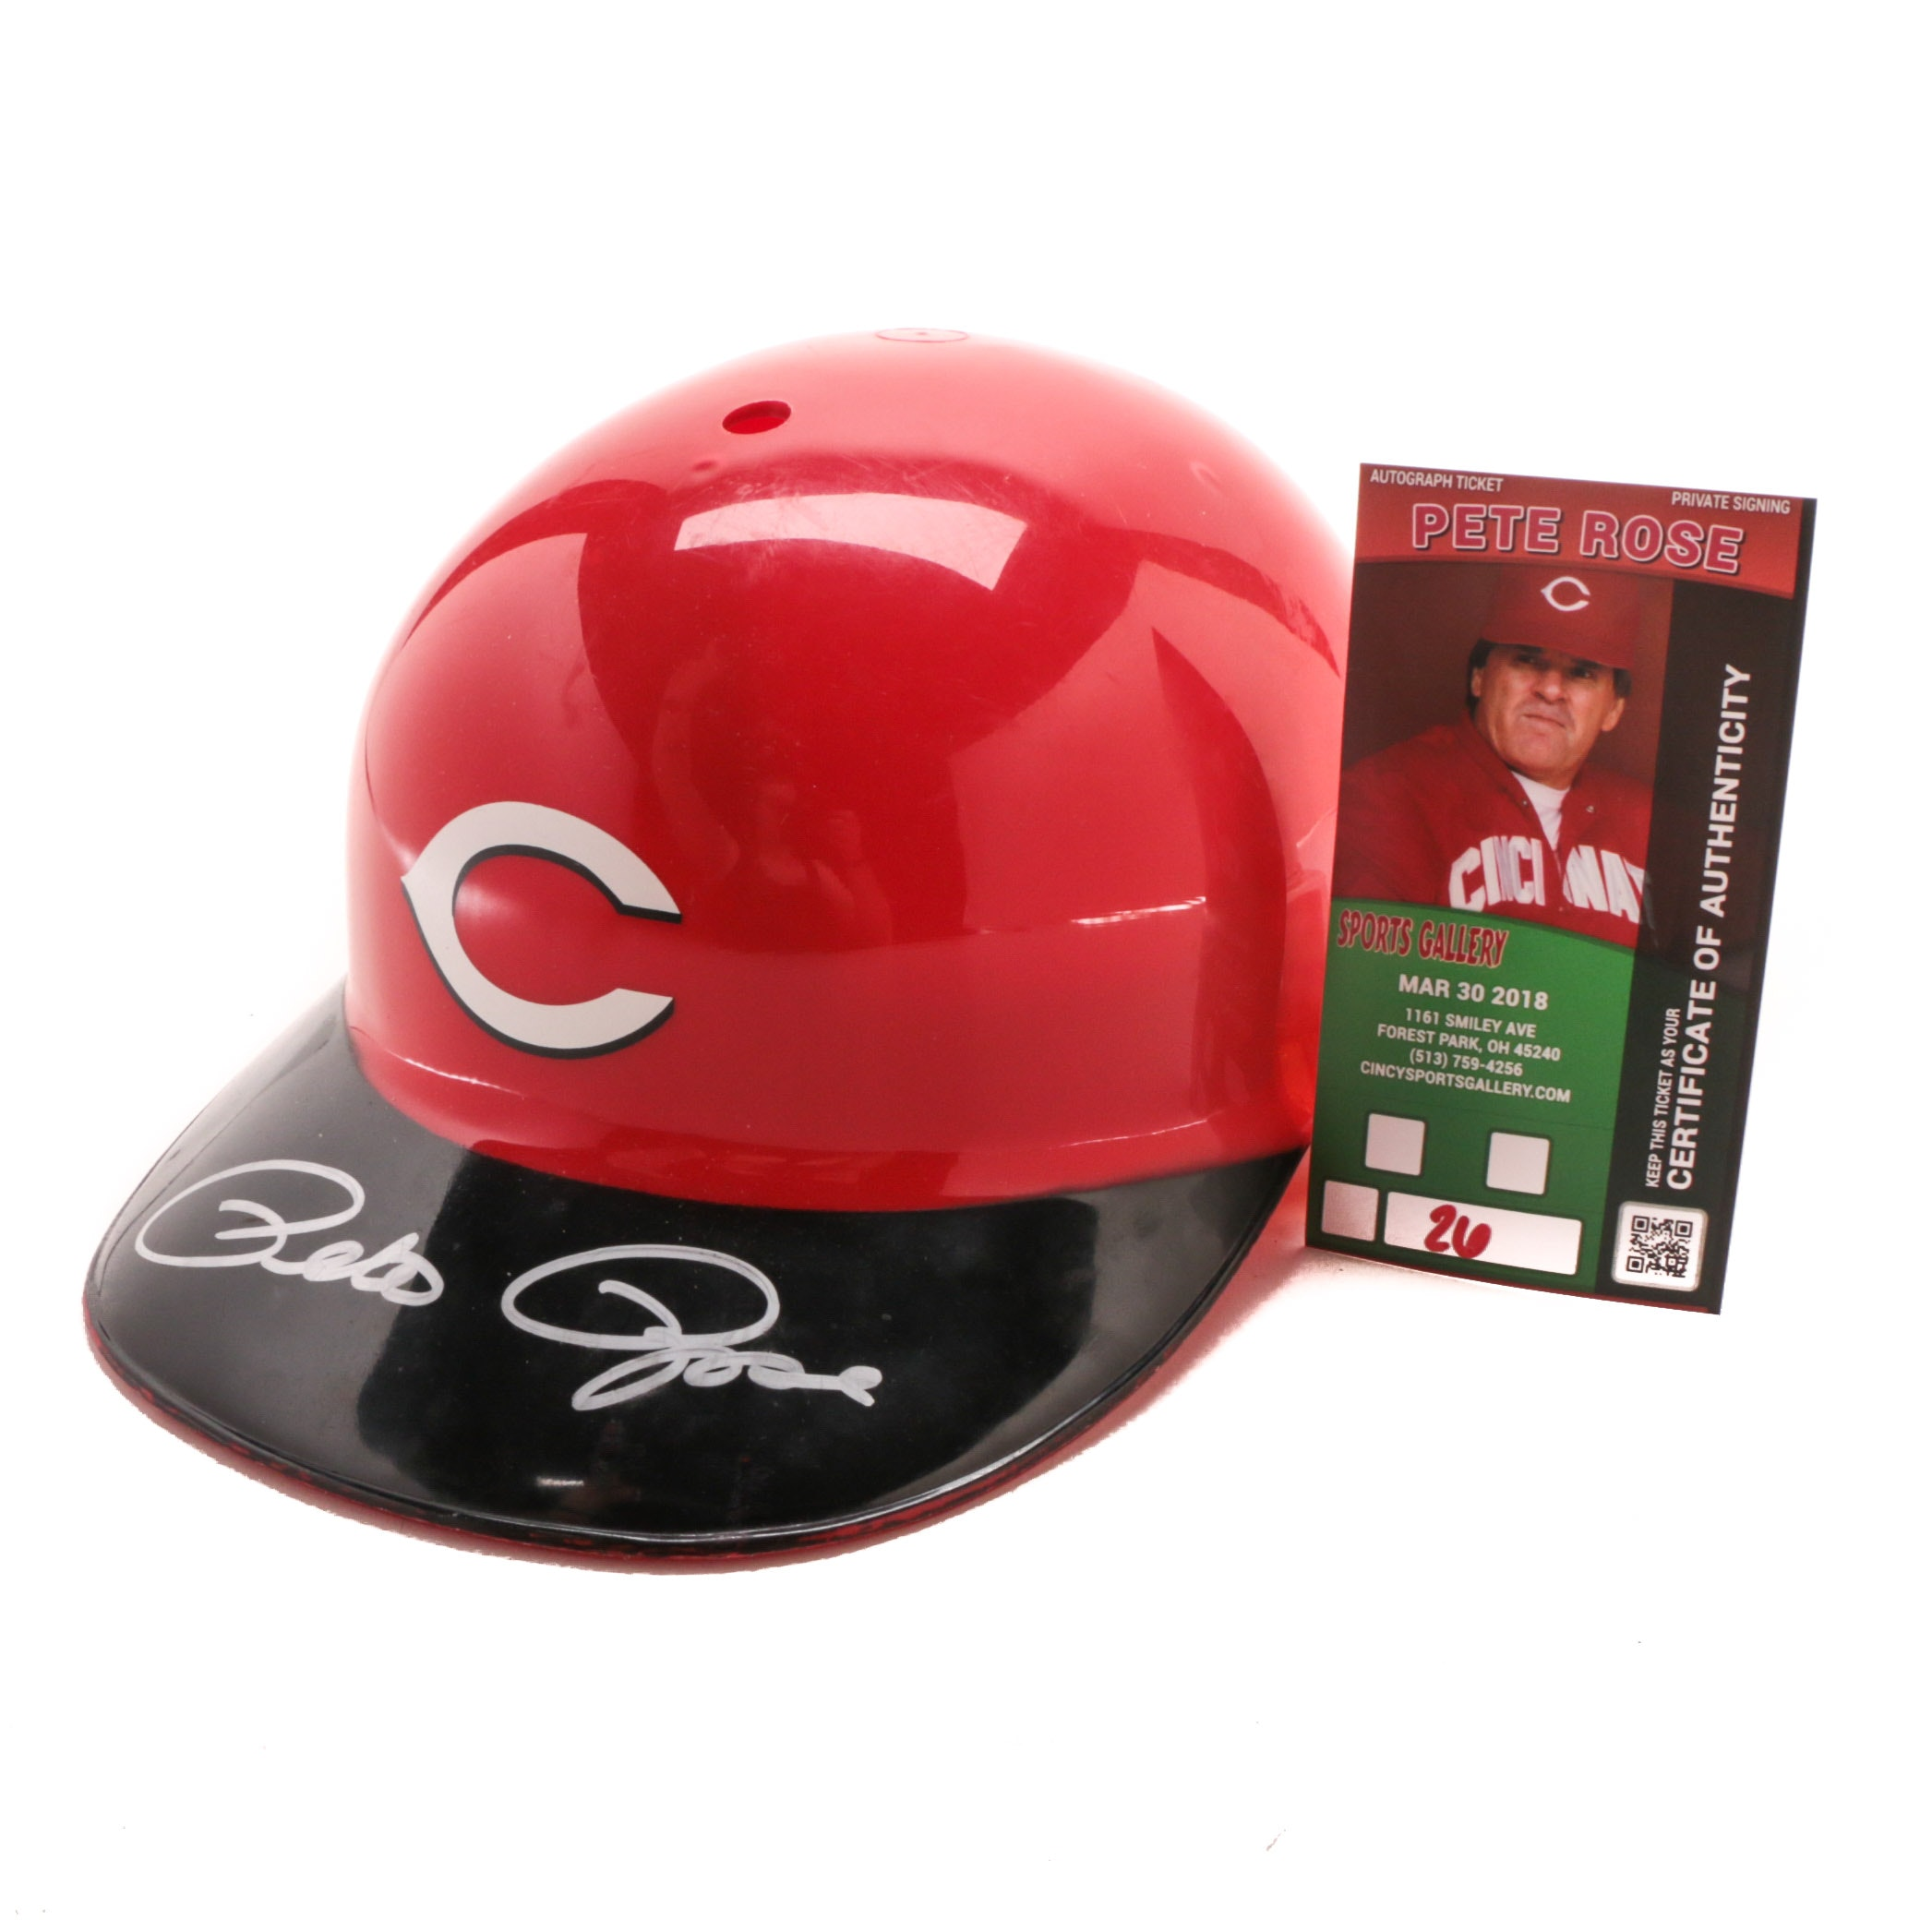 Pete Rose Signed Batting Helmet  COA